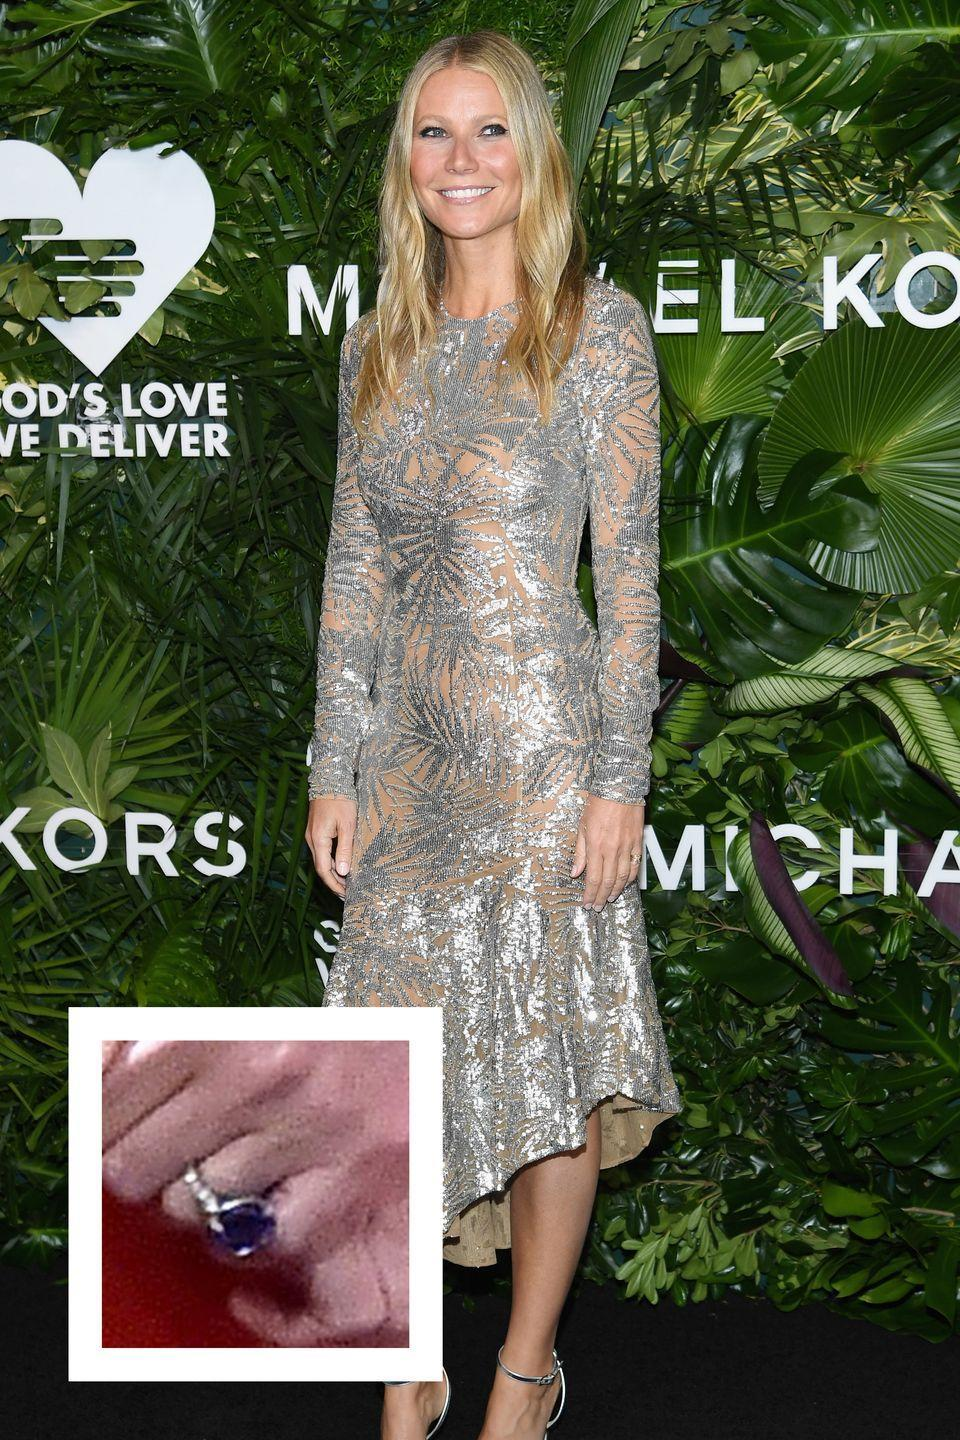 """<p>In early 2018, Paltrow announced her engagement to her boyfriend of three years, <a href=""""https://www.townandcountrymag.com/society/g13858632/brad-falchuk-facts/"""" rel=""""nofollow noopener"""" target=""""_blank"""" data-ylk=""""slk:television writer, director, and producer Brad Falchuk."""" class=""""link rapid-noclick-resp"""">television writer, director, and producer Brad Falchuk.</a> Falchuk proposed <a href=""""https://www.townandcountrymag.com/style/jewelry-and-watches/a15836847/gwyneth-paltrow-engagement-ring/"""" rel=""""nofollow noopener"""" target=""""_blank"""" data-ylk=""""slk:with a massive sapphire engagement"""" class=""""link rapid-noclick-resp"""">with a massive sapphire engagement</a> ring, with a center stone that could be from 10 to 13 carats large, <a href=""""http://time.com/money/5114870/gwyneth-paltrow-engagement-ring-value/"""" rel=""""nofollow noopener"""" target=""""_blank"""" data-ylk=""""slk:Time reports."""" class=""""link rapid-noclick-resp""""><em>Time</em> reports.</a></p>"""